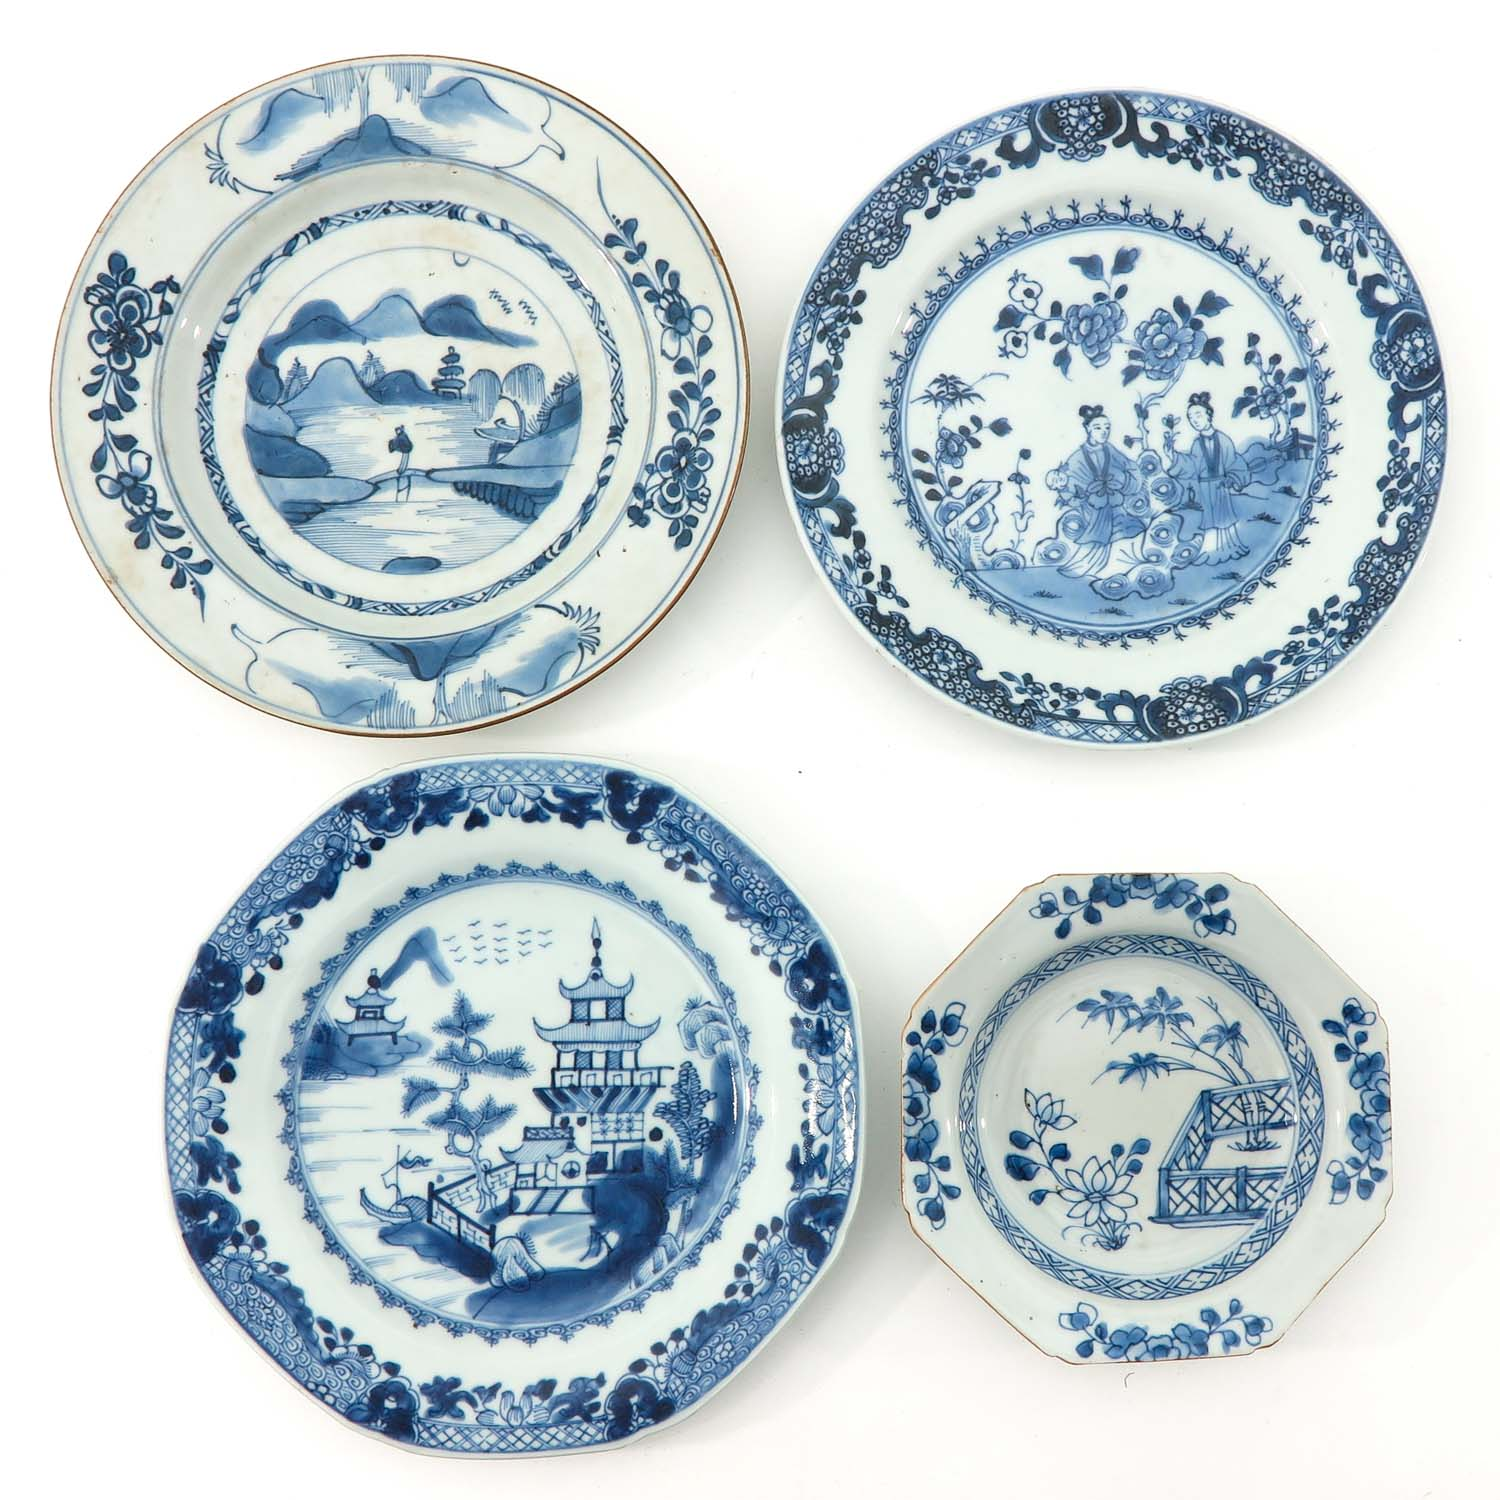 A Collection of 4 Blue and White Plates